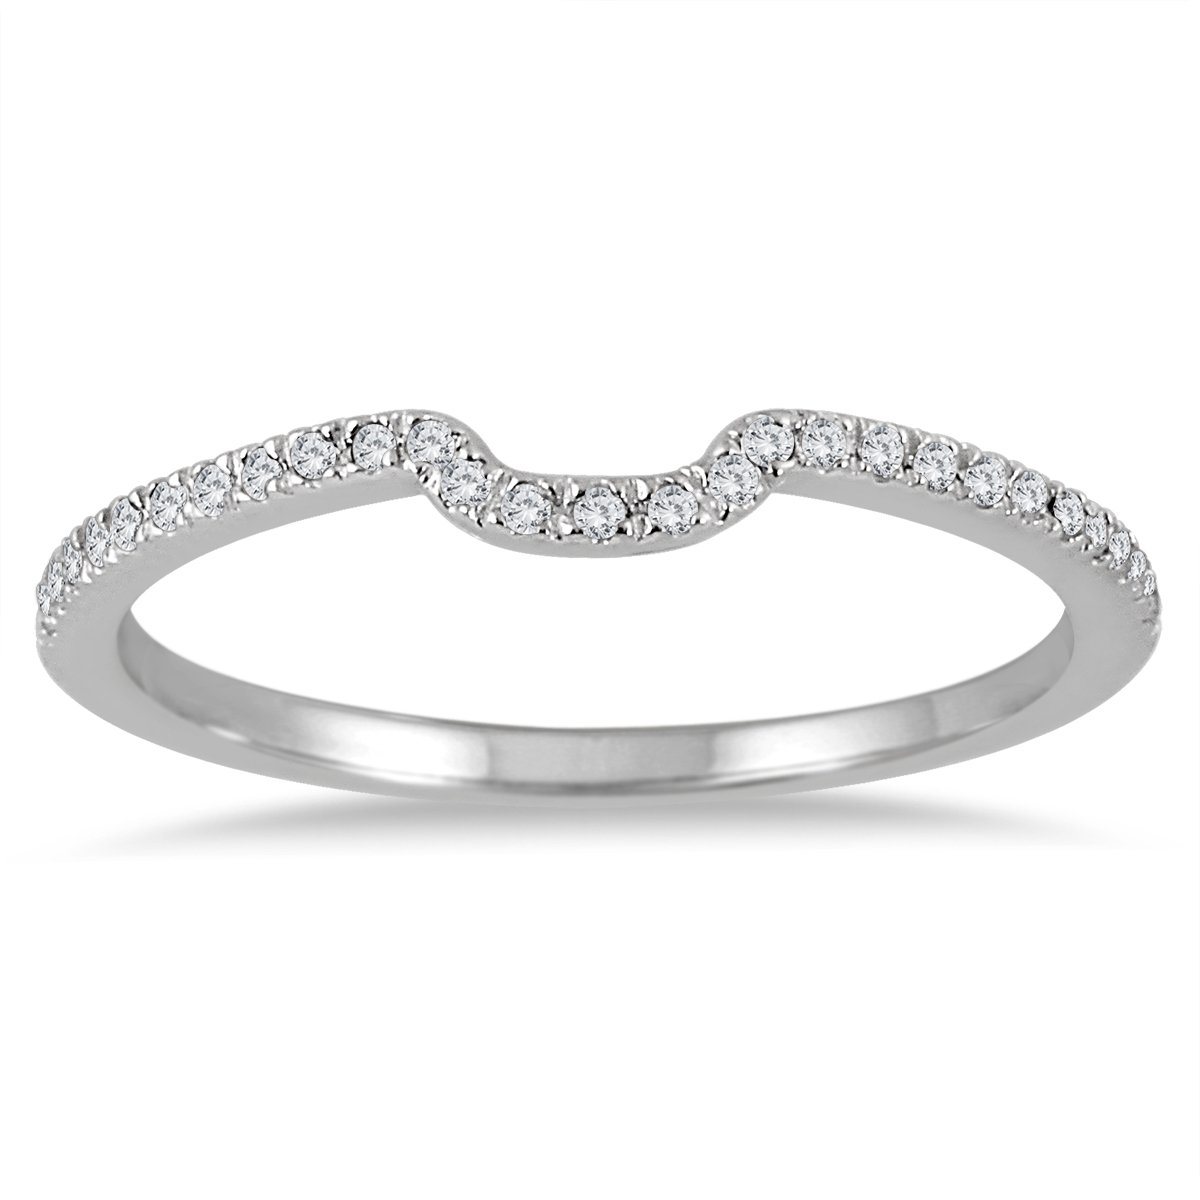 1/8 Carat TW Diamond Wedding Band in 14K White Gold by Szul